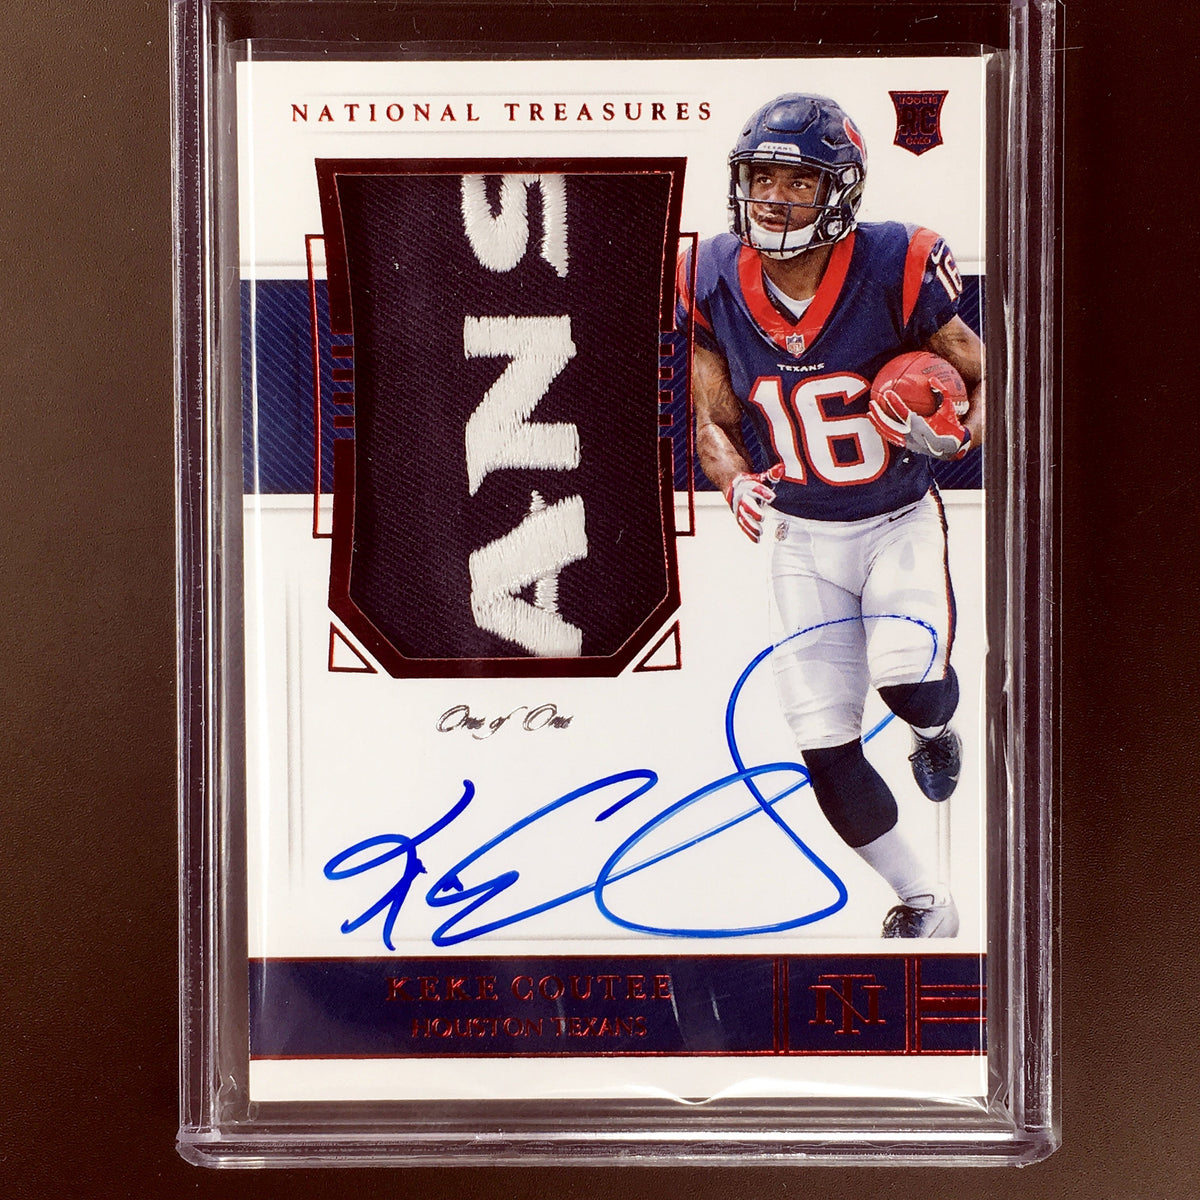 huge discount ded11 7d36c 2018 National Treasures KEKE COUTEE Rookie Patch Auto 1/1 Texans Patch RPA